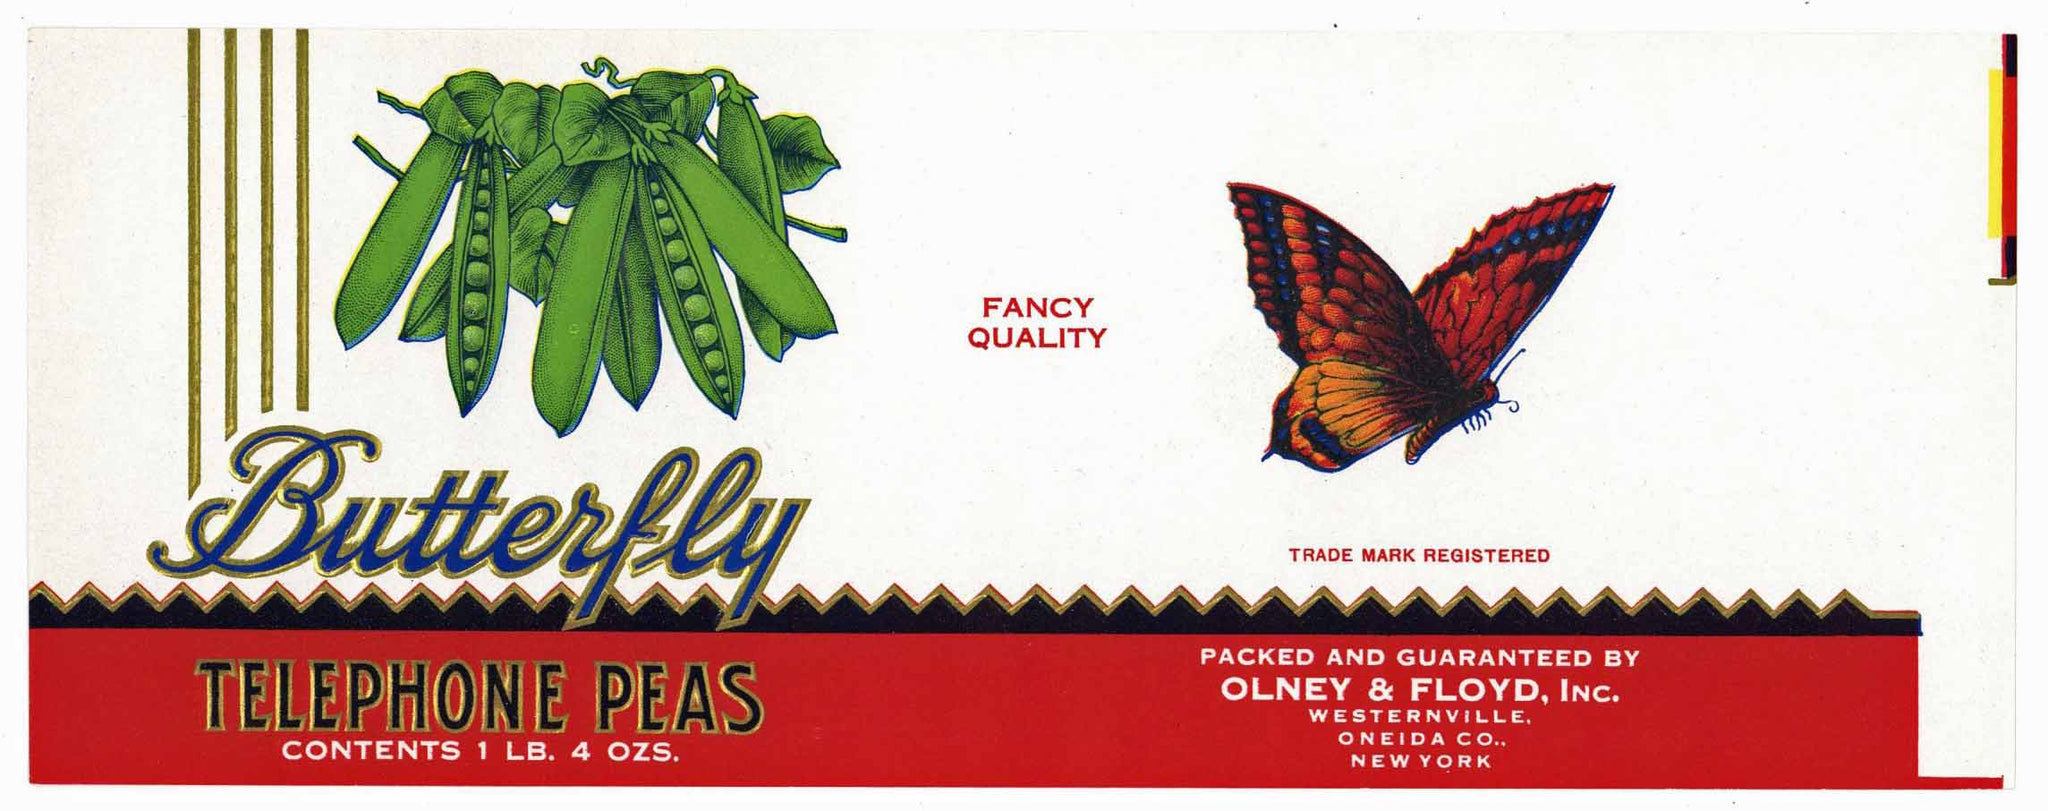 Butterfly Brand Vintage Olney & FLoyd Telephone Peas Can Label